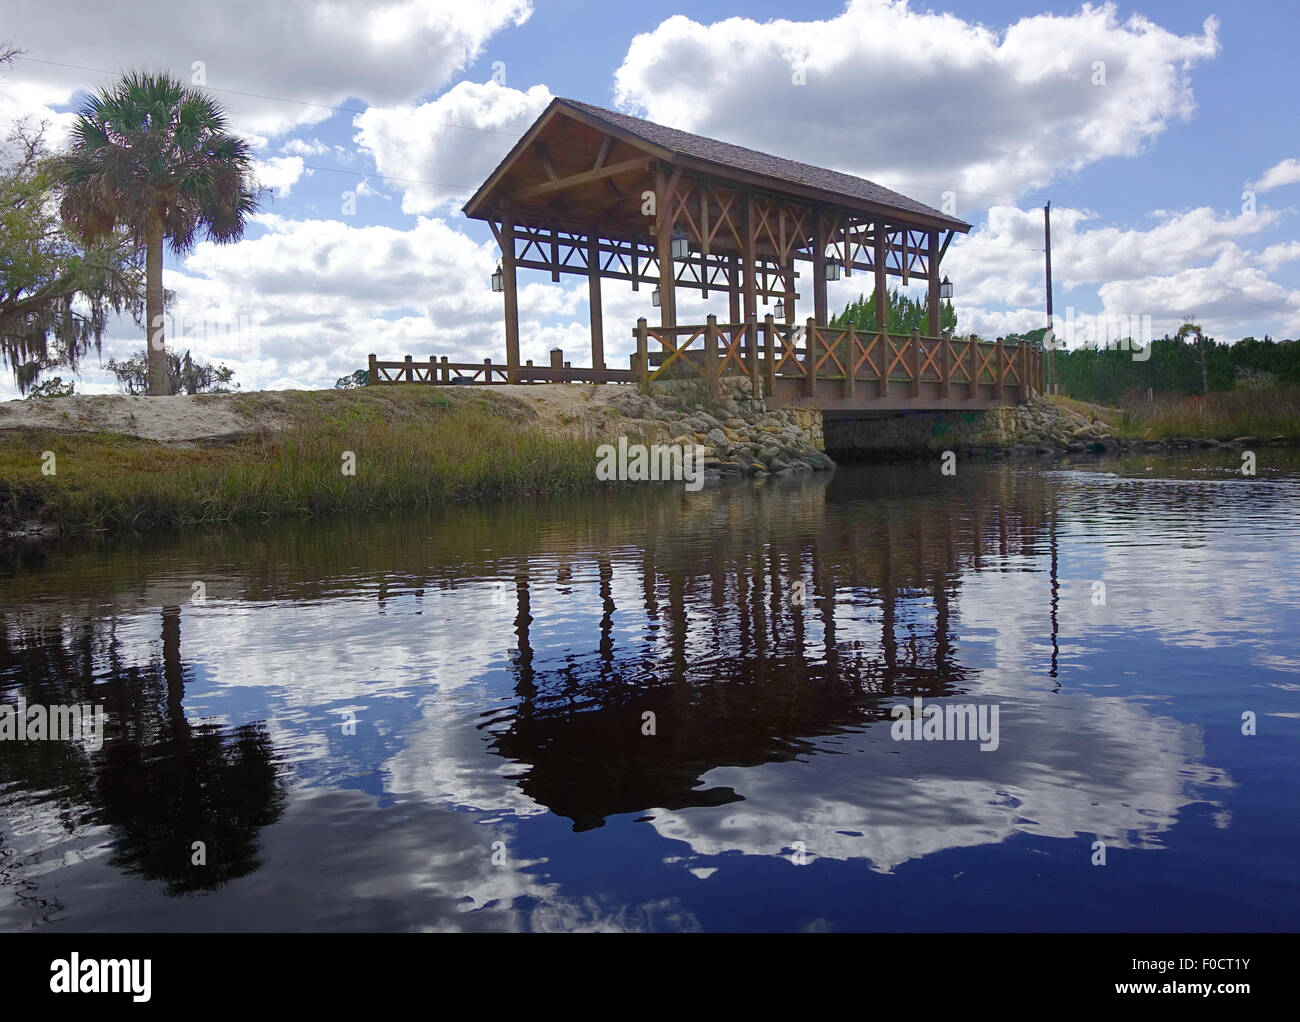 Covered bridge over Styles Creek, Palm Coast, Flagler County, Florida - Stock Image